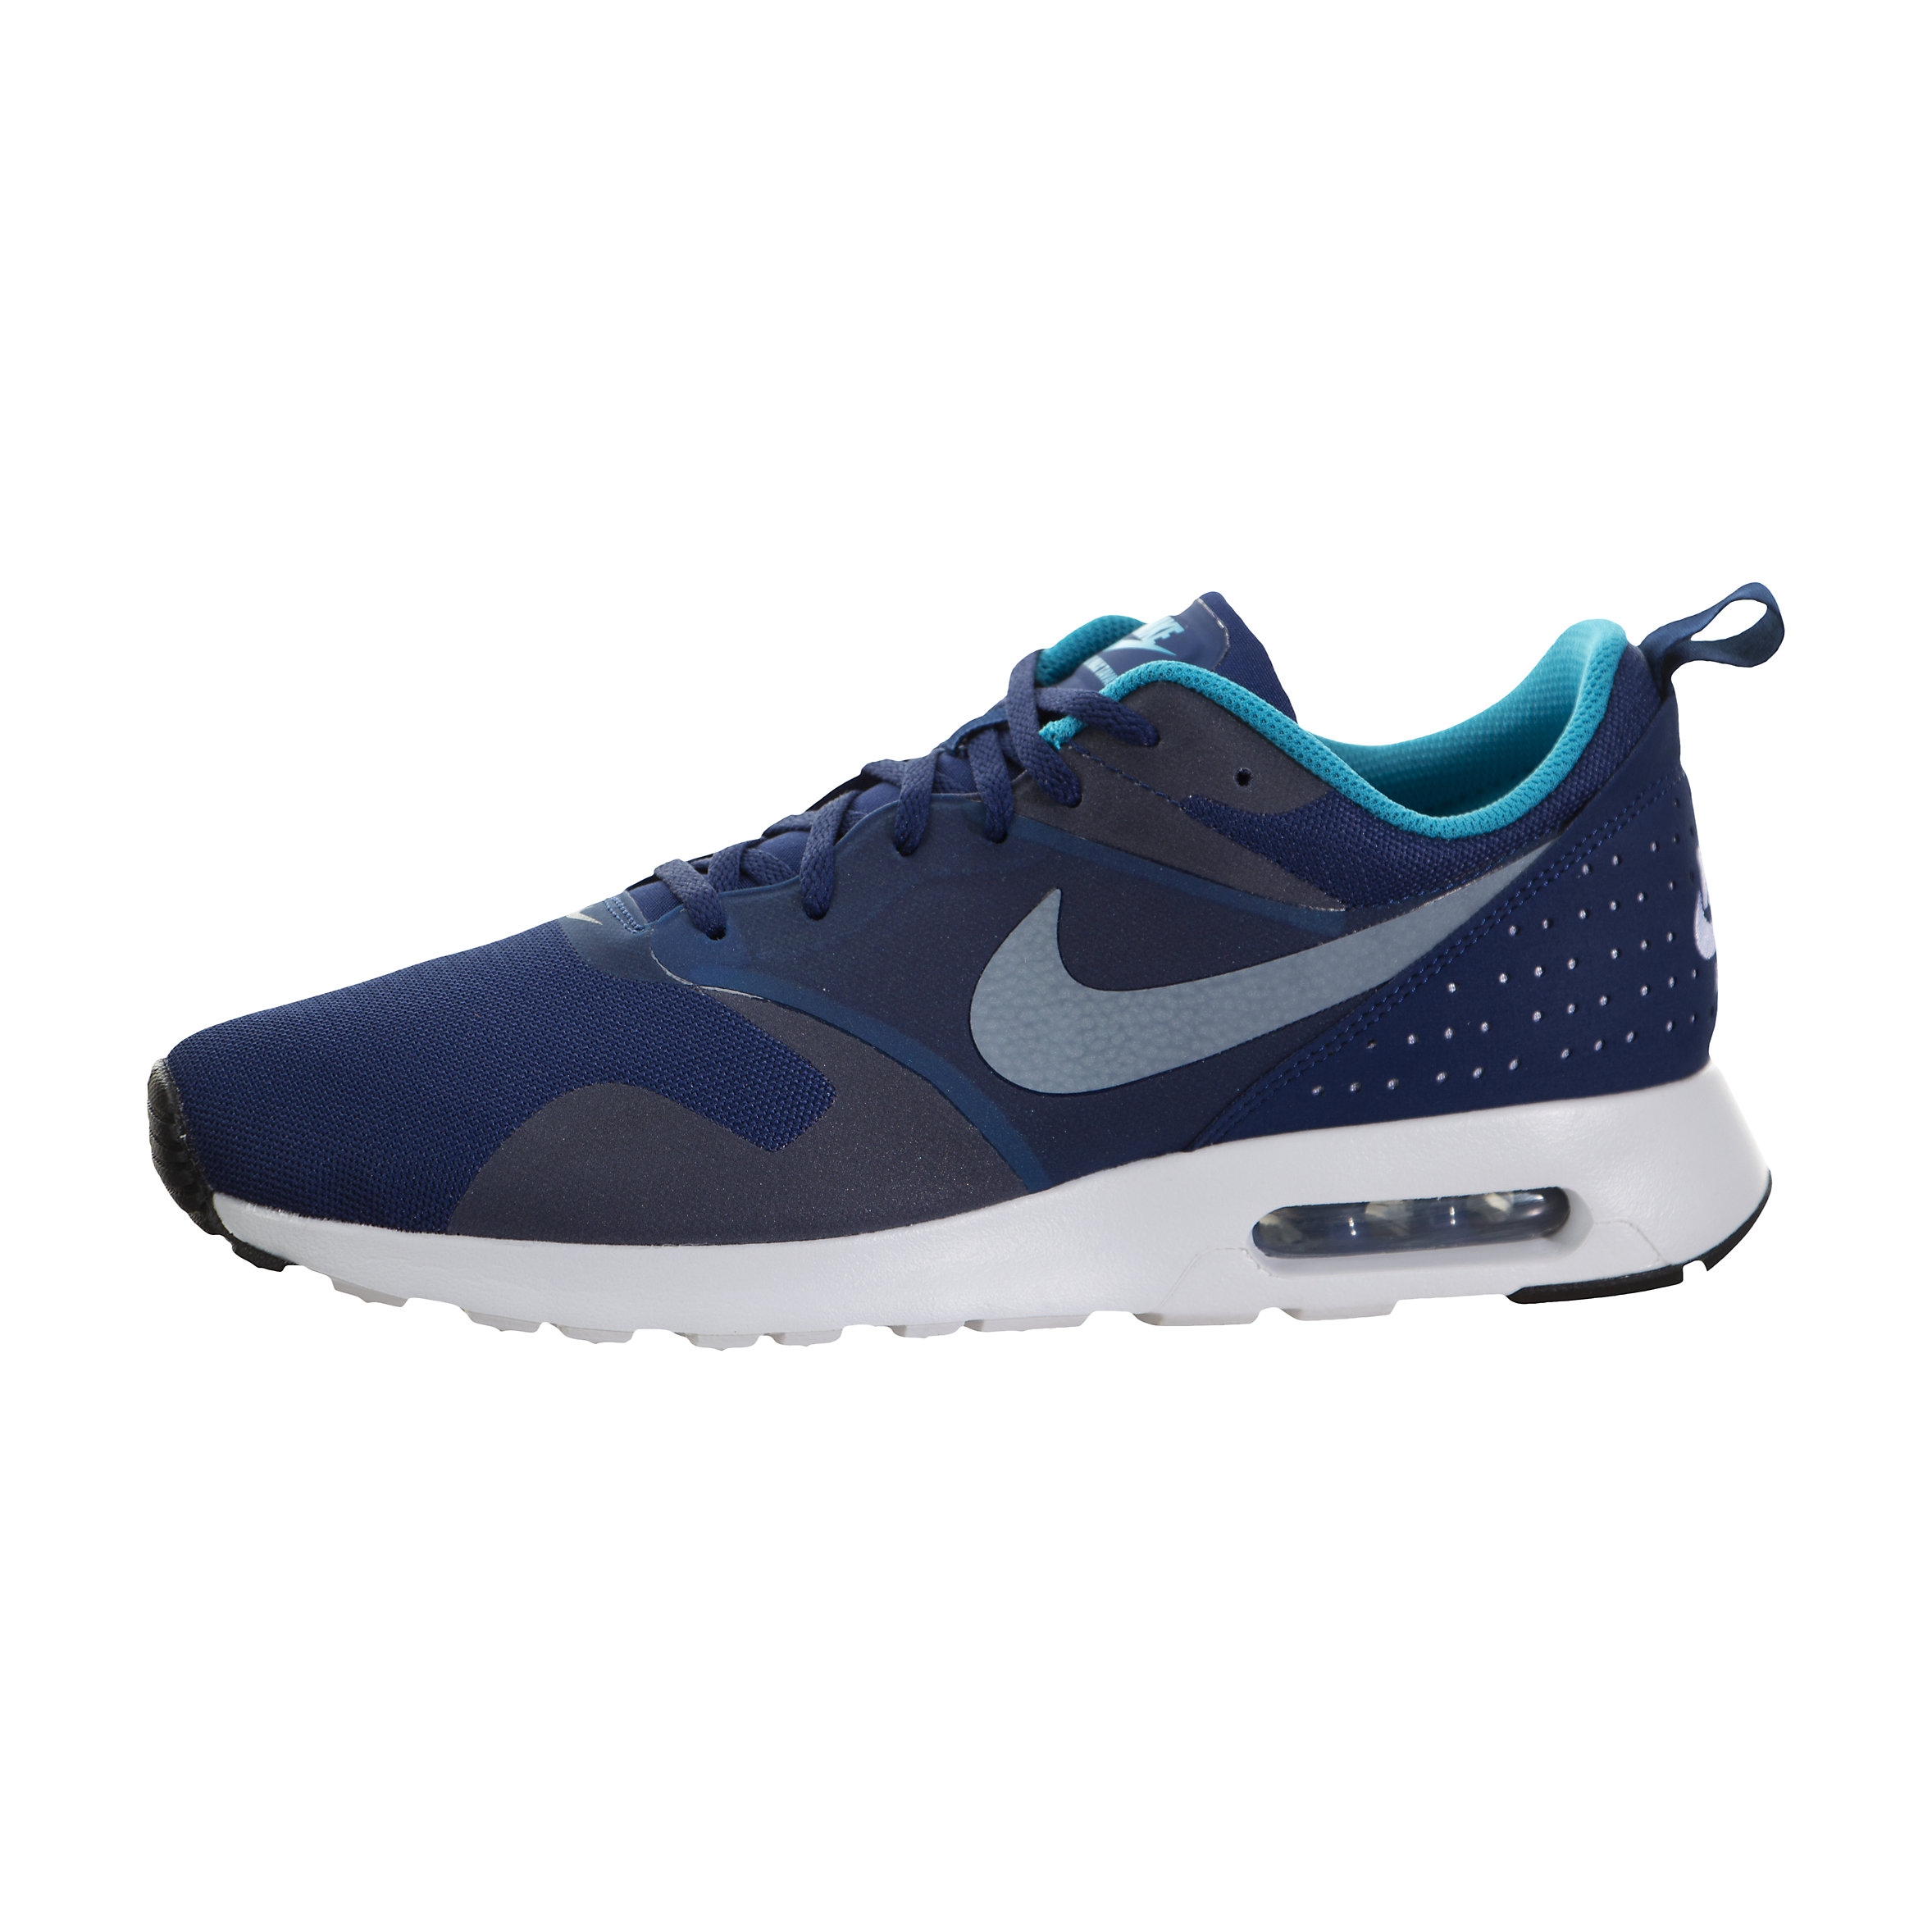 Airmax nike shoes air max nike shoes VKMJDAC